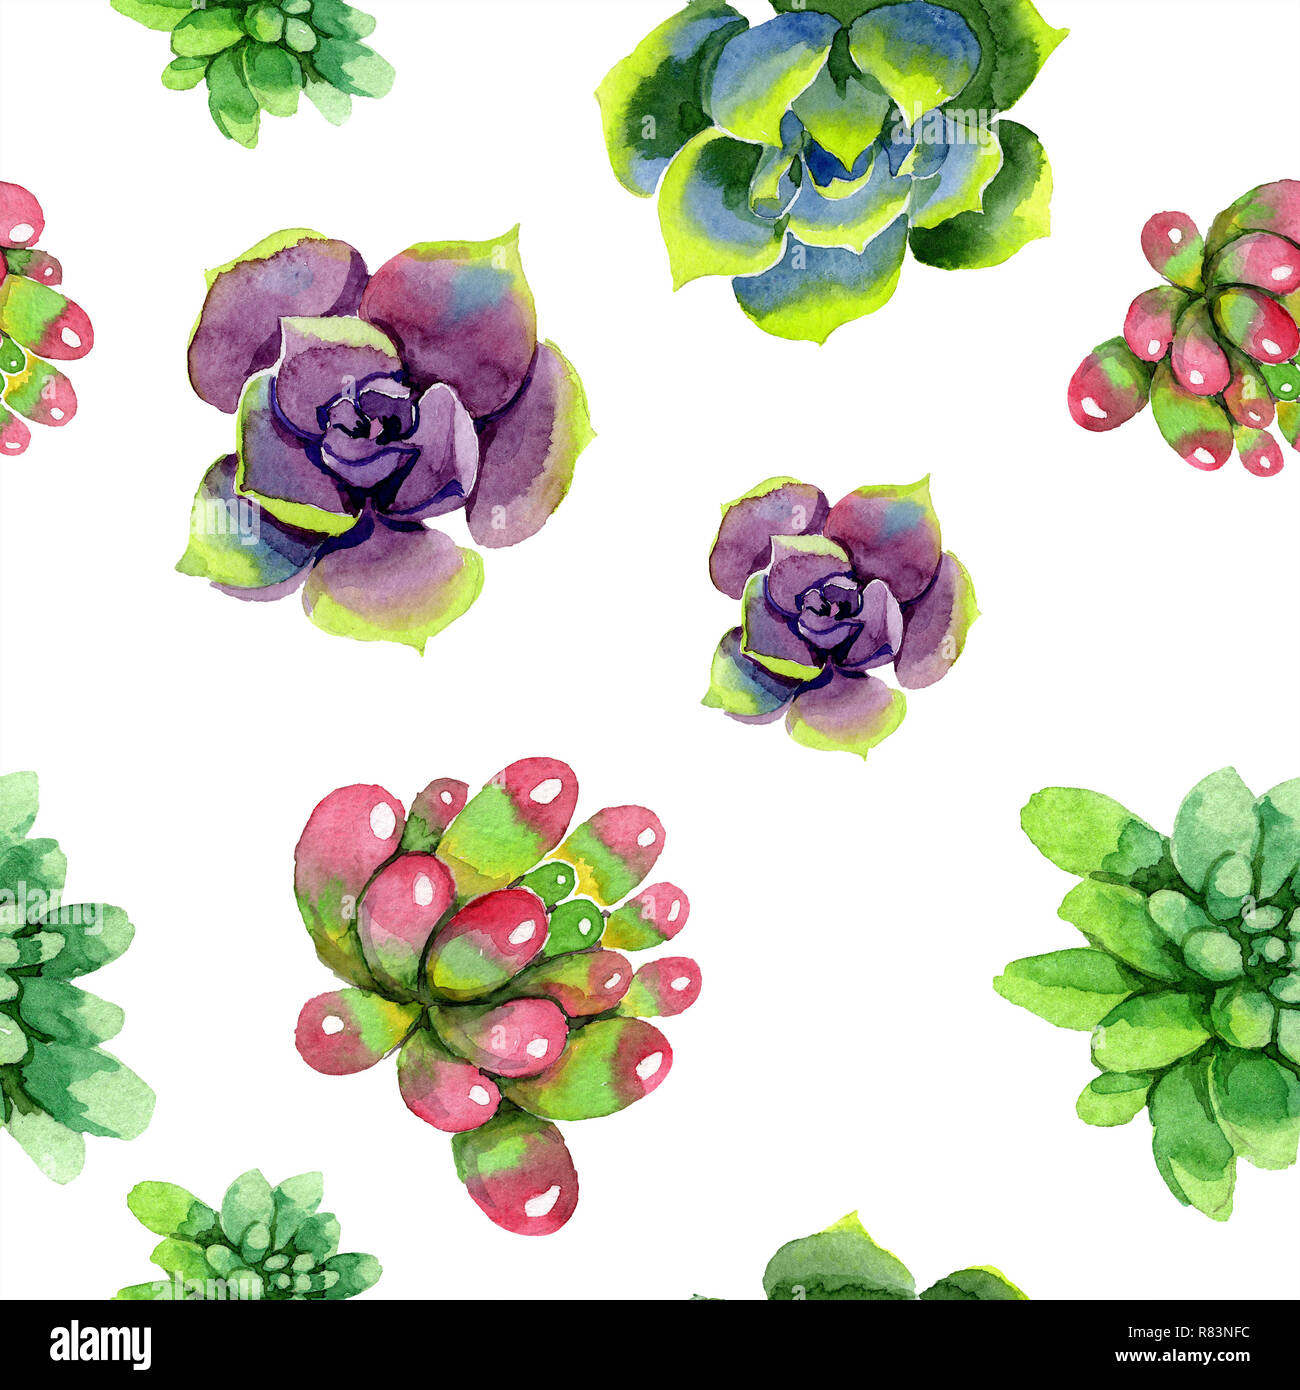 Amazing Succulent Floral Botanical Flower Watercolor